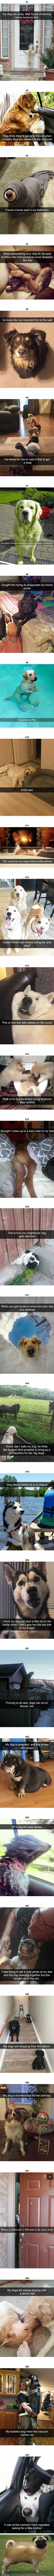 30 Hilarious #Dog Snapchats That Are Impawsible Not To Laugh At